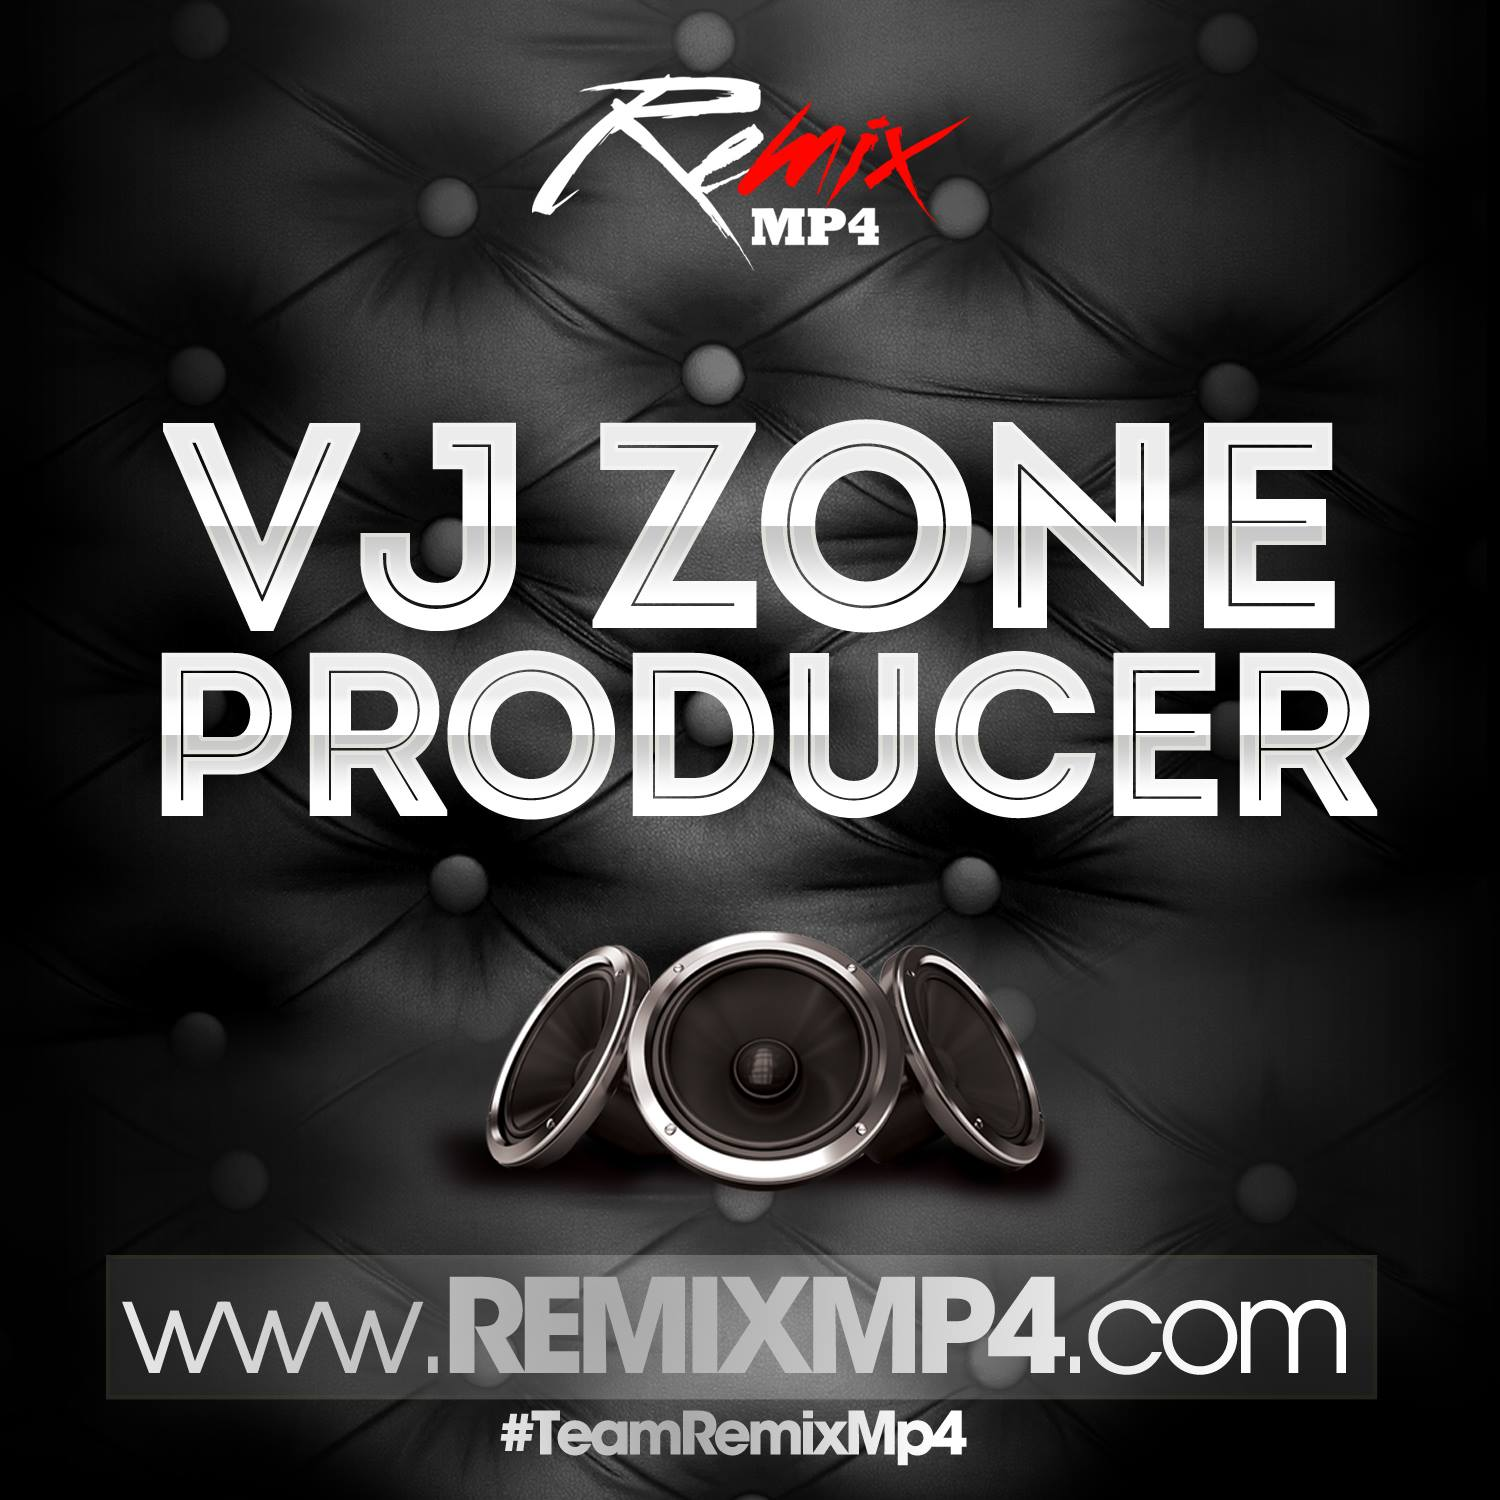 Remix [Vj Zone Producer]